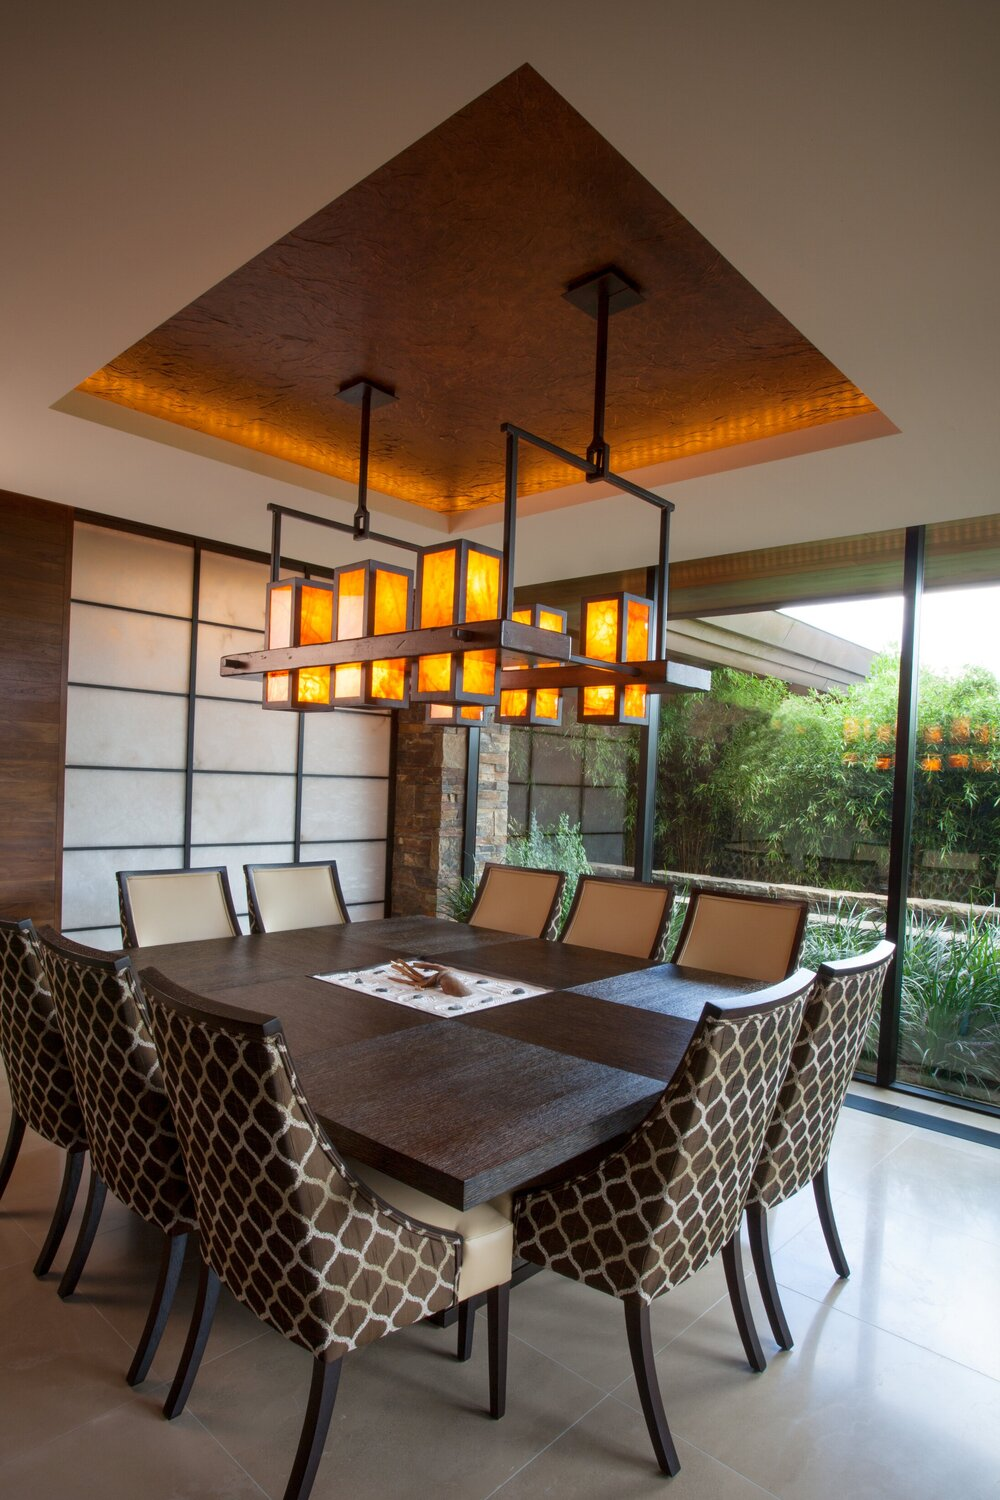 Custom light in a Las Vegas residence featuring Honey Onyx stone mined in Utah and cut exclusively for this fixture.